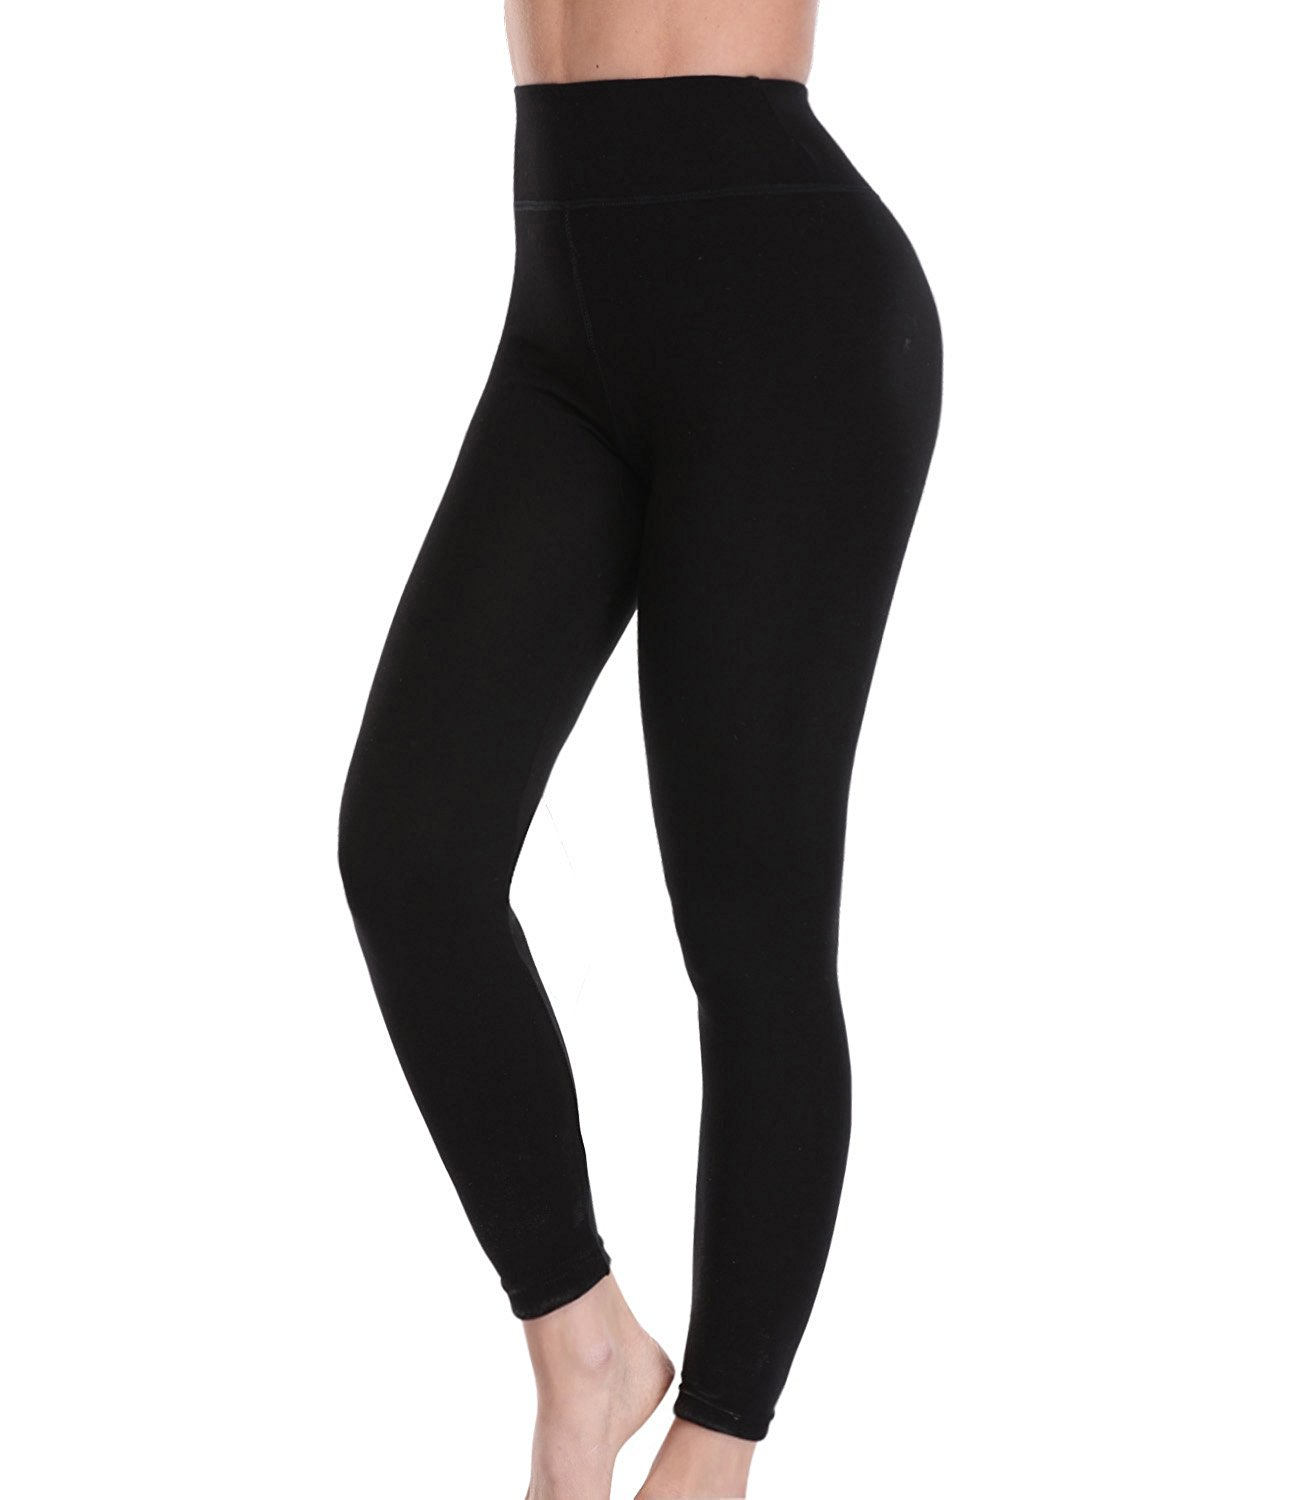 0eda9fcdde Get Quotations · LANFEI Women Warm Fleece Lined Leggings Stretchy Soft Yoga  Pants